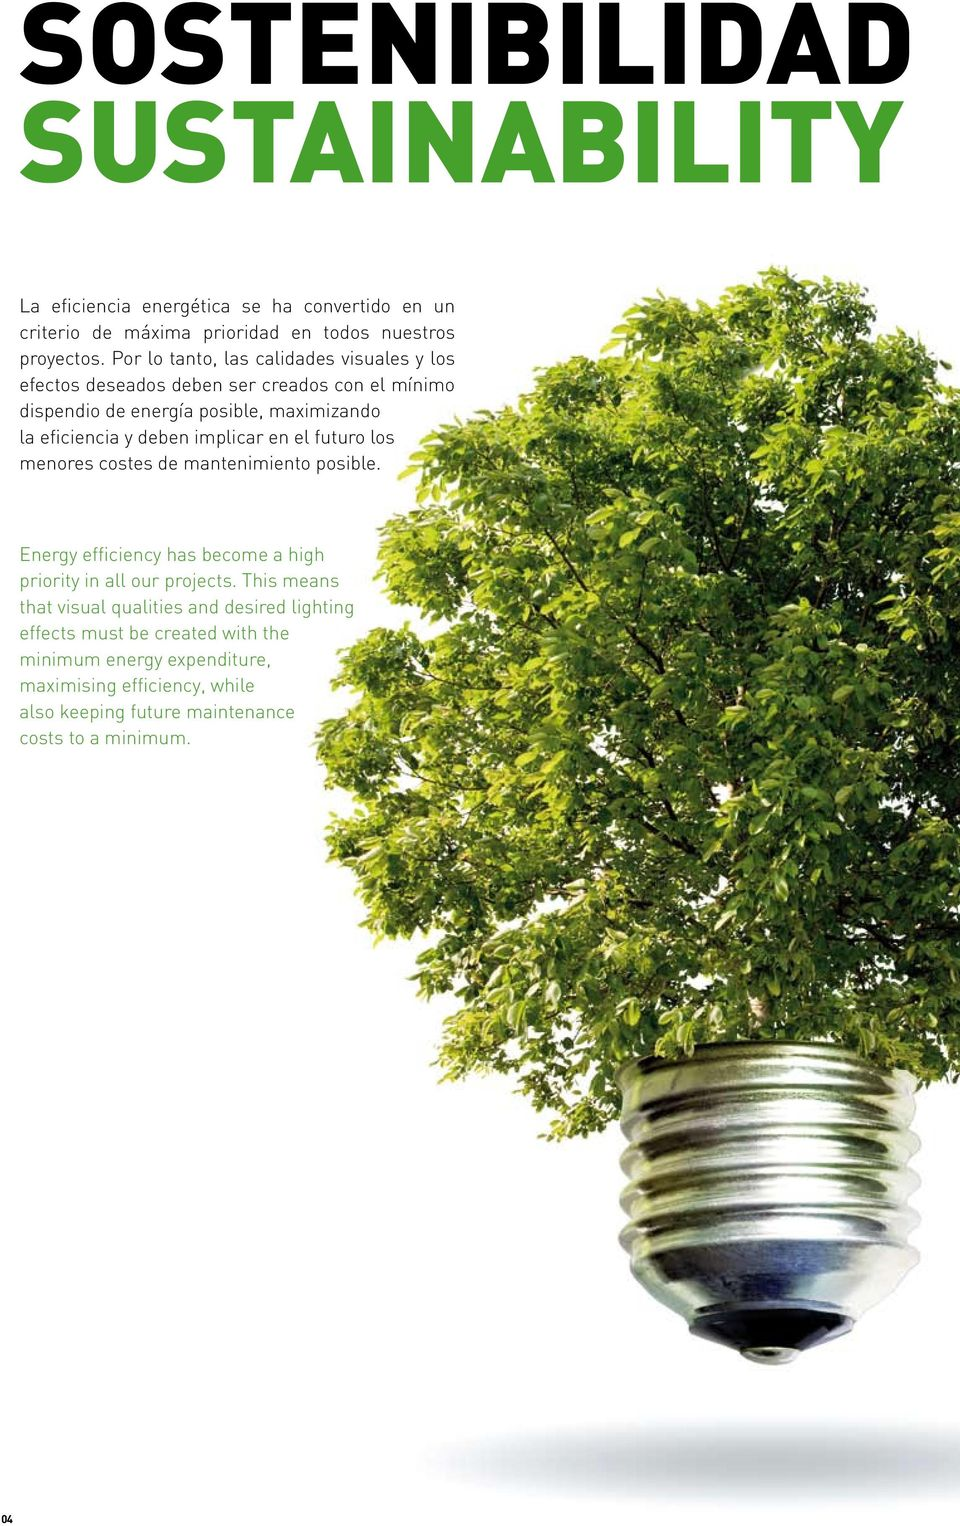 implicar en el futuro los menores costes de mantenimiento posible. Energy efficiency has become a high priority in all our projects.